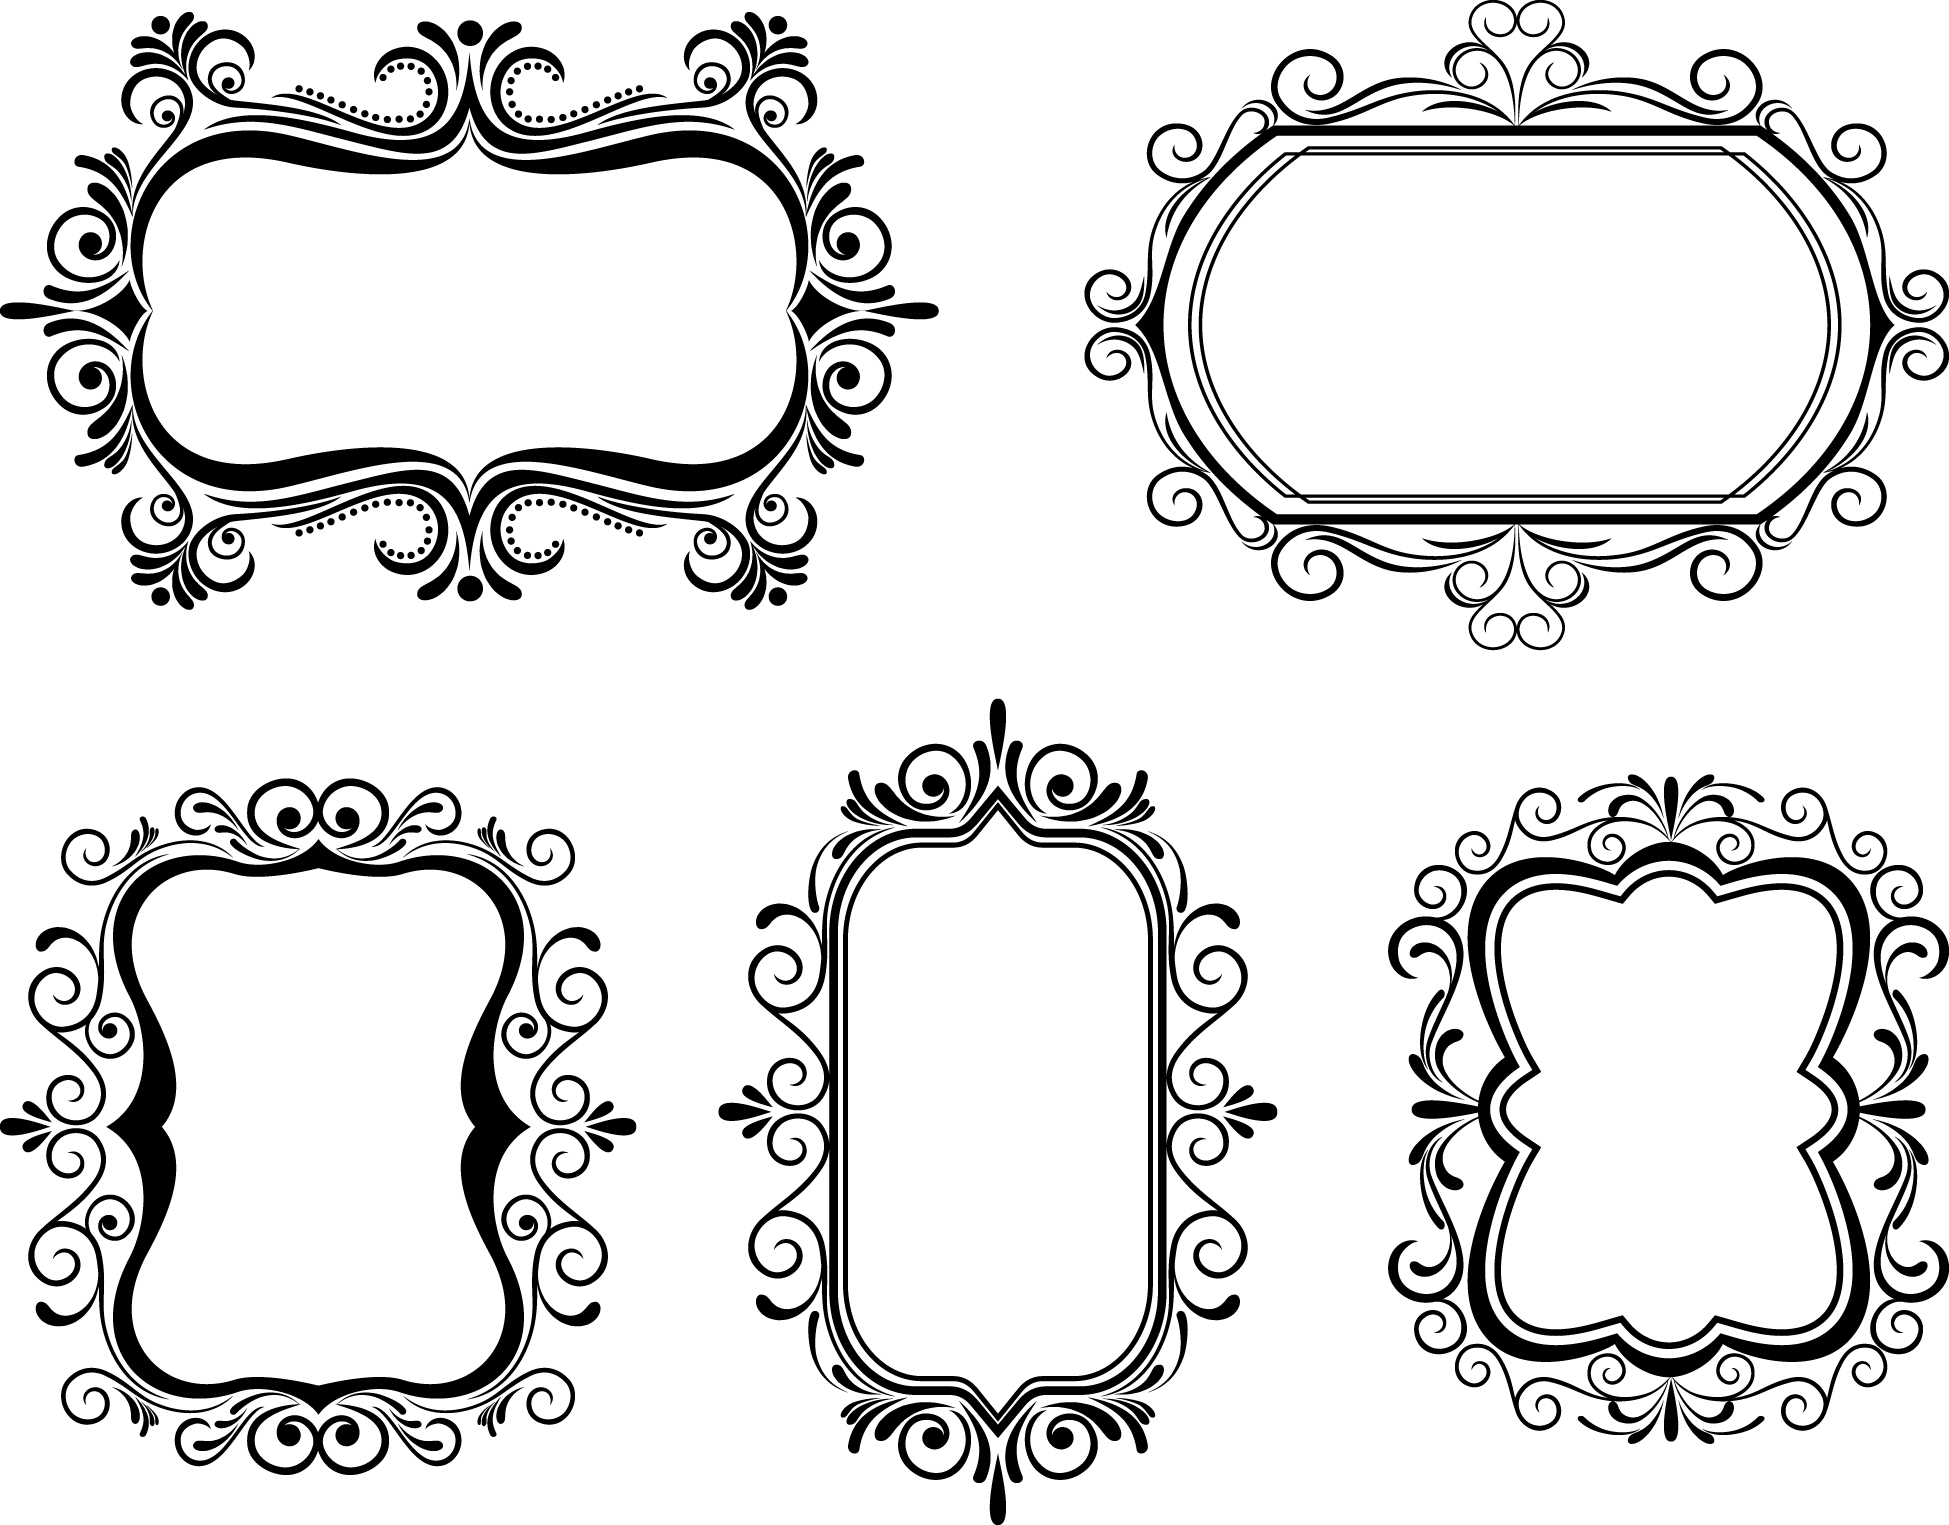 download design clip art vector - photo #48